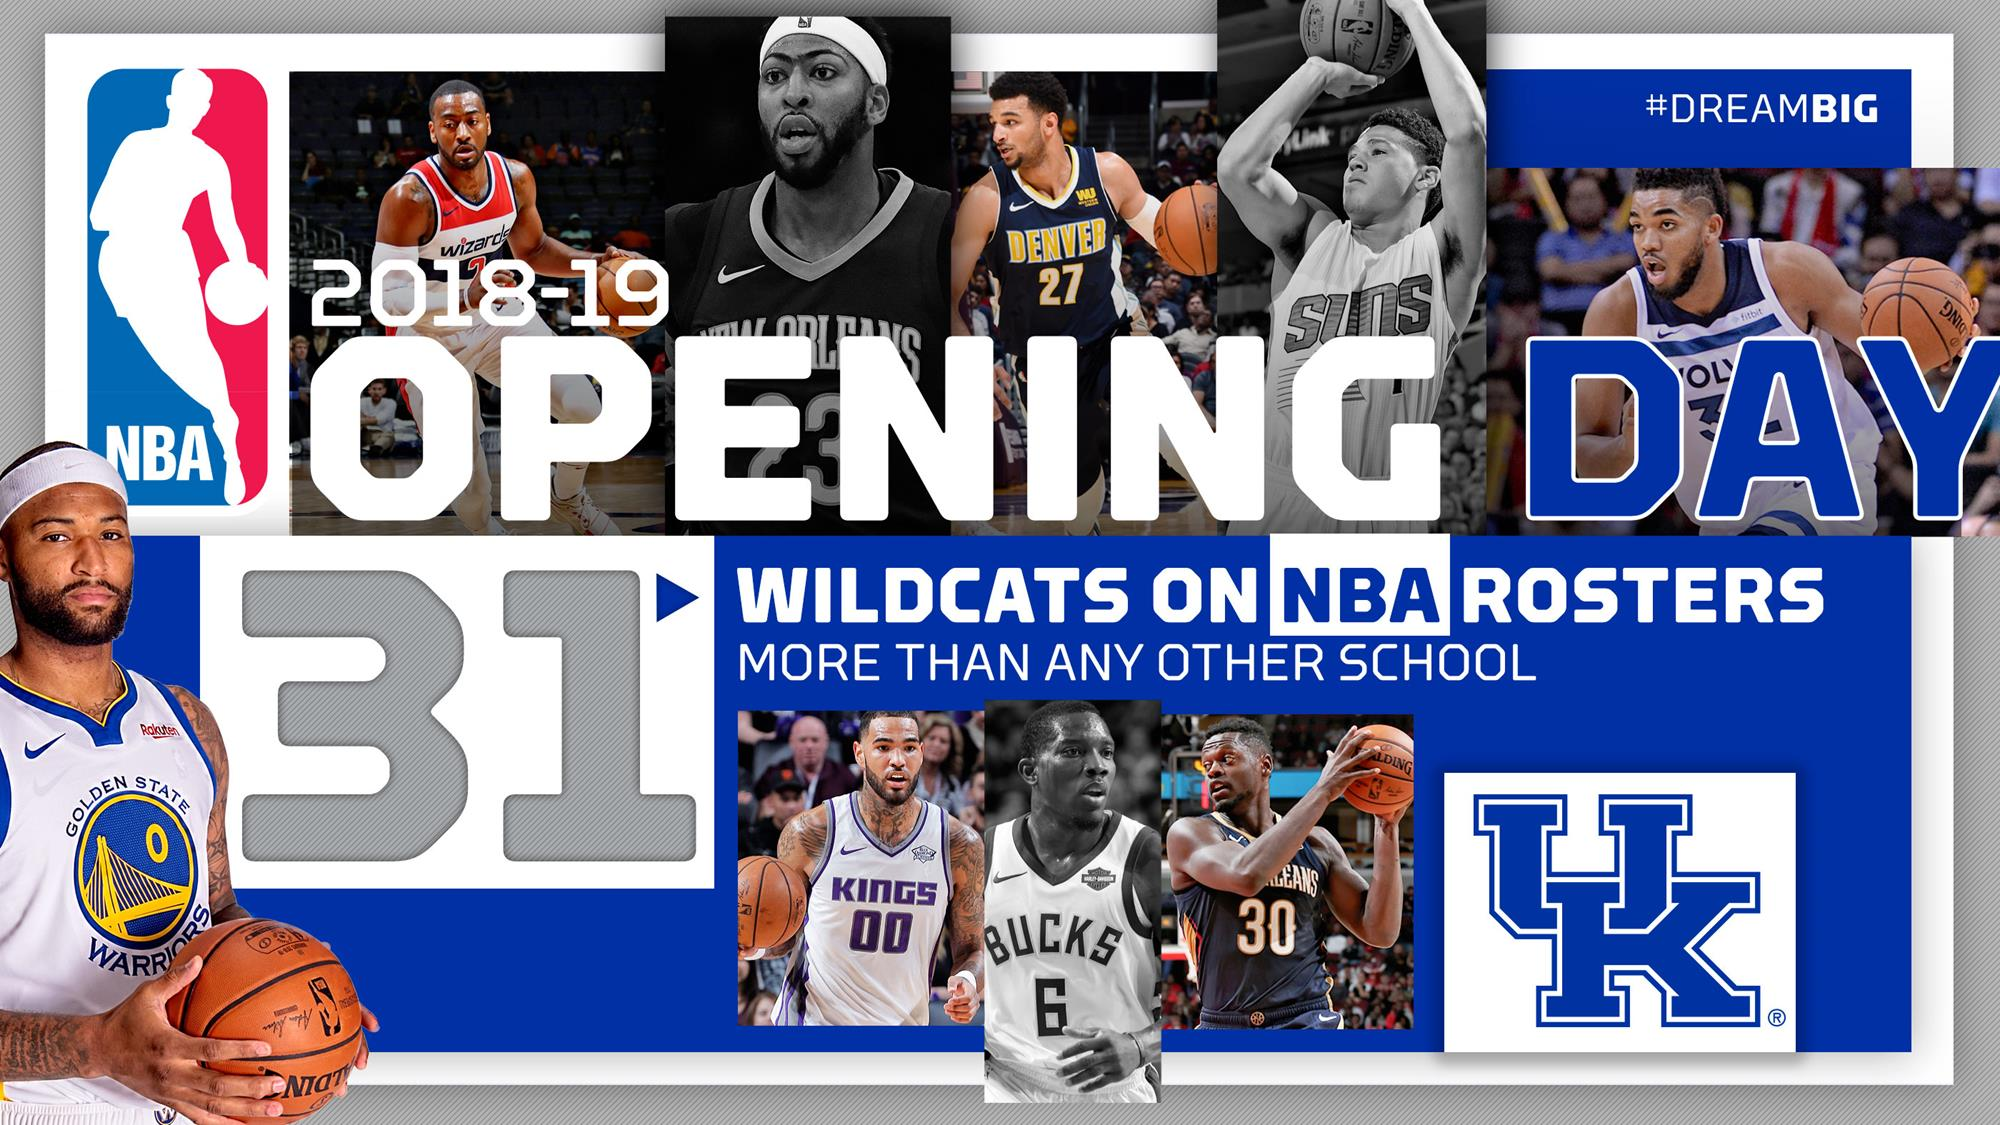 Uk Men S Basketball 2018 2019 Schedule: UK Leads The Nation With 31 Players On NBA Opening-Day